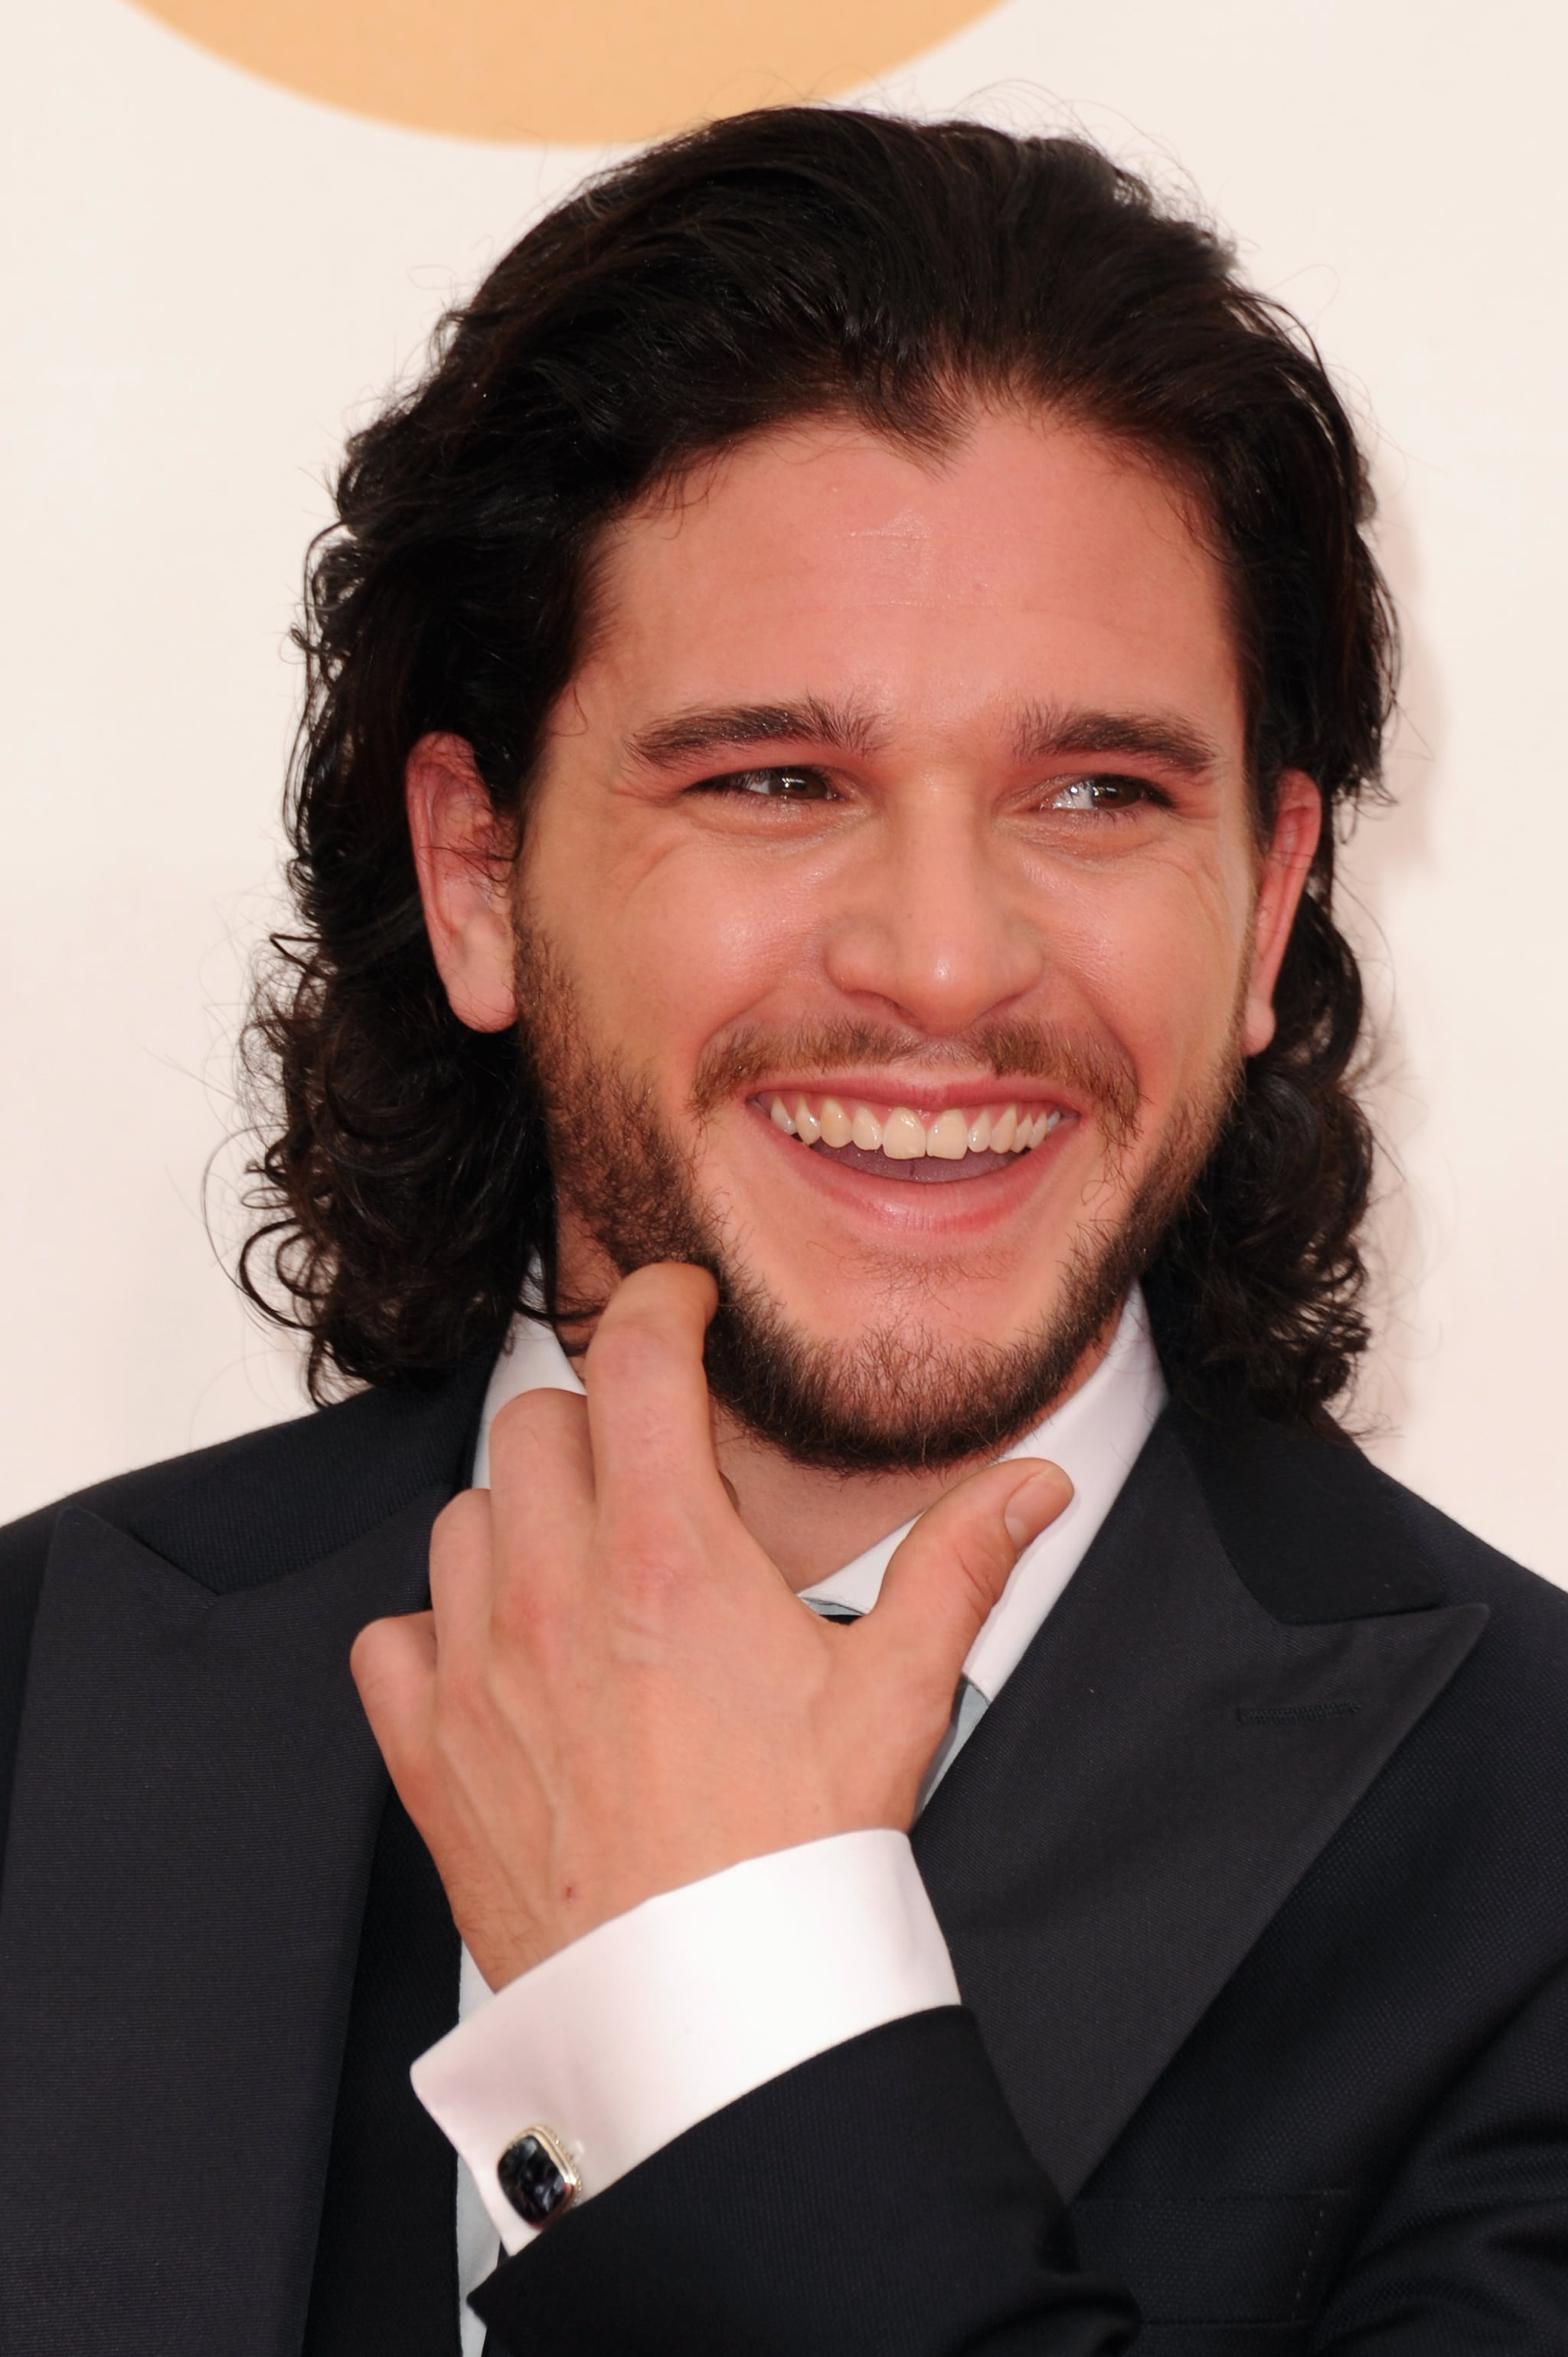 Photographic Proof That Kit Harington Has a Sexy Smile